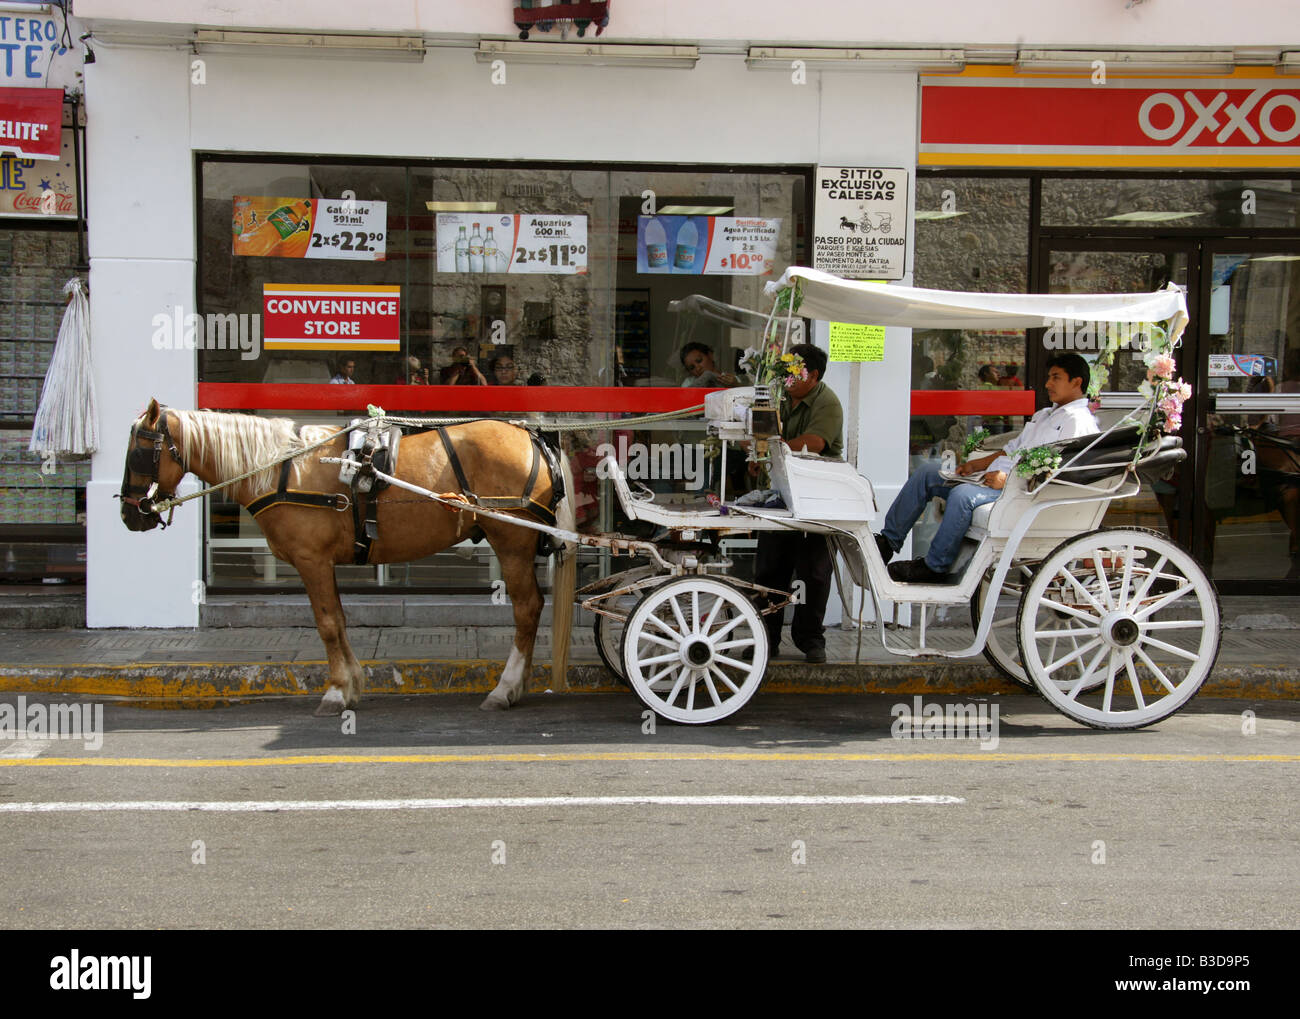 Horse and Carriage Taxi, Merida, Yucatan Peninsular, Mexico. Stock Photo